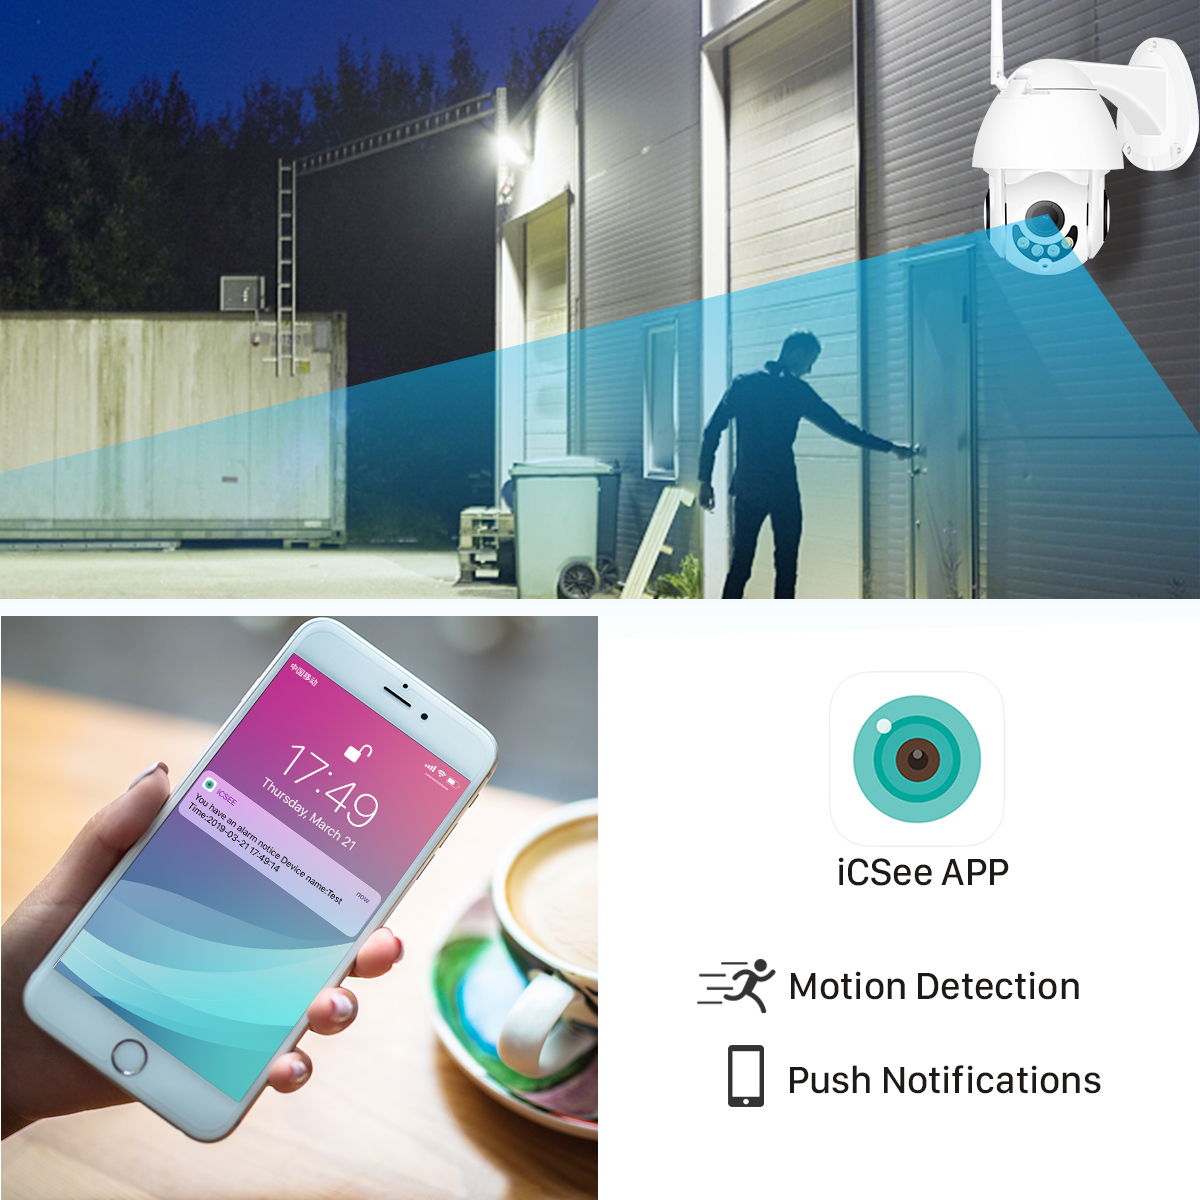 Super High Quality Security Camera IP66 Waterproof for Outdoor use from Gadget Mou. Great Icsee App with Push Notification and Motion Detection.